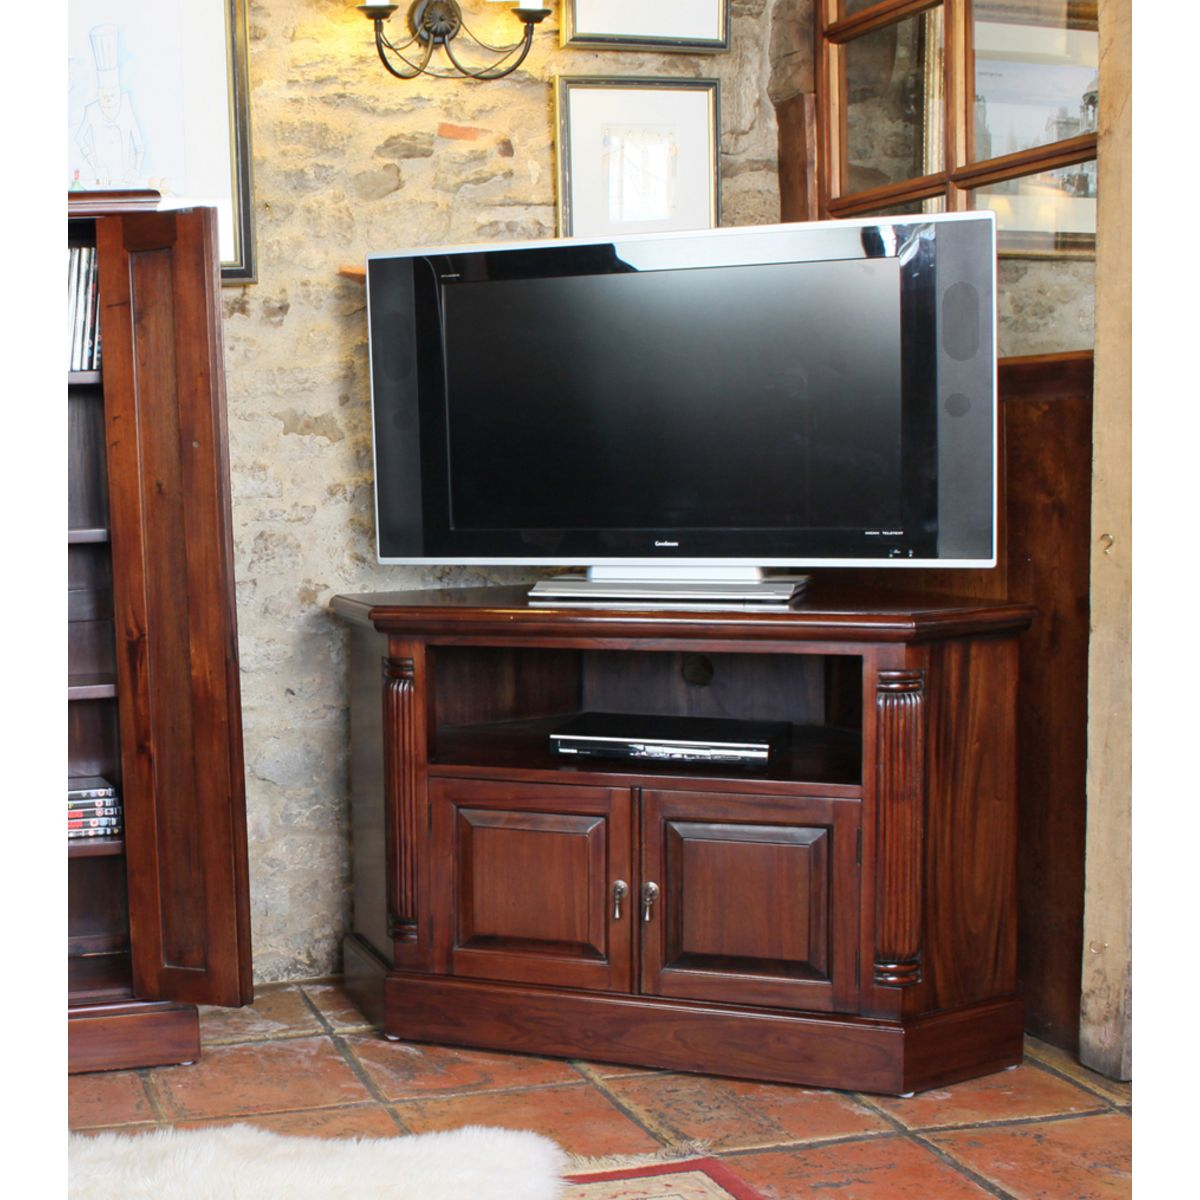 Mahogany Corner Television Cabinet – Wooden Furniture Store For Tv Stands Cabinets (View 8 of 15)